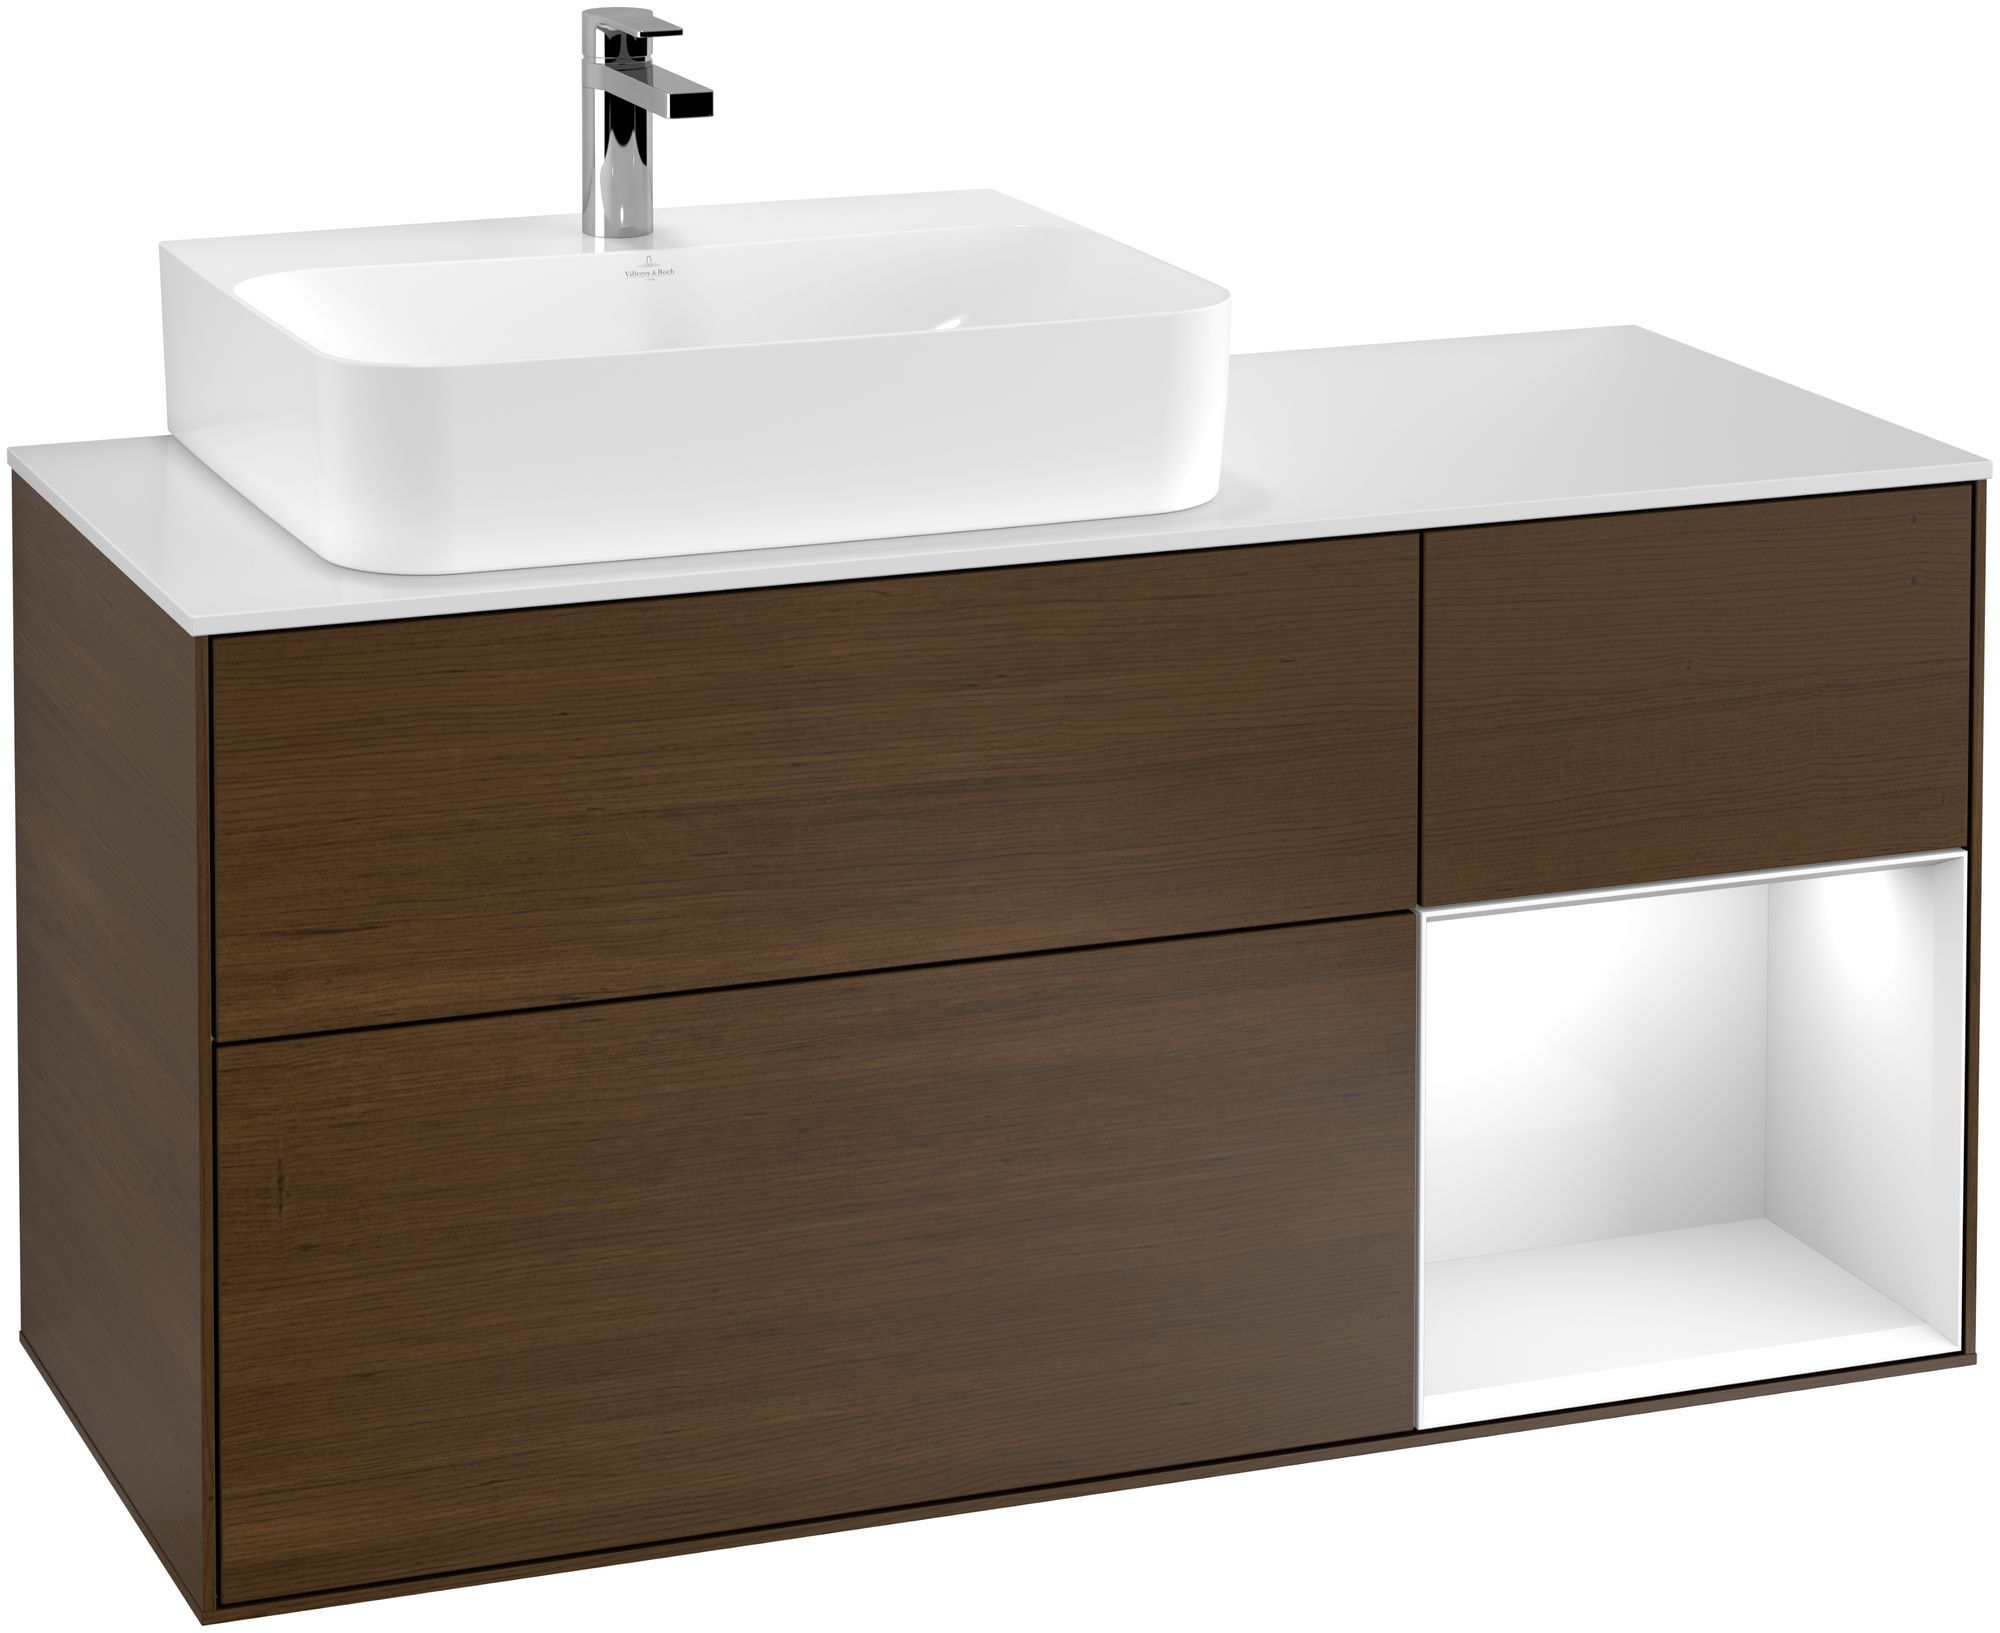 Villeroy & Boch Finion G15 Waschtischunterschrank mit Regalelement 3 Auszüge Waschtisch links LED-Beleuchtung B:120xH:60,3xT:50,1cm Front, Korpus: Walnut Veneer, Regal: Glossy White Lack, Glasplatte: White Matt G151GFGN